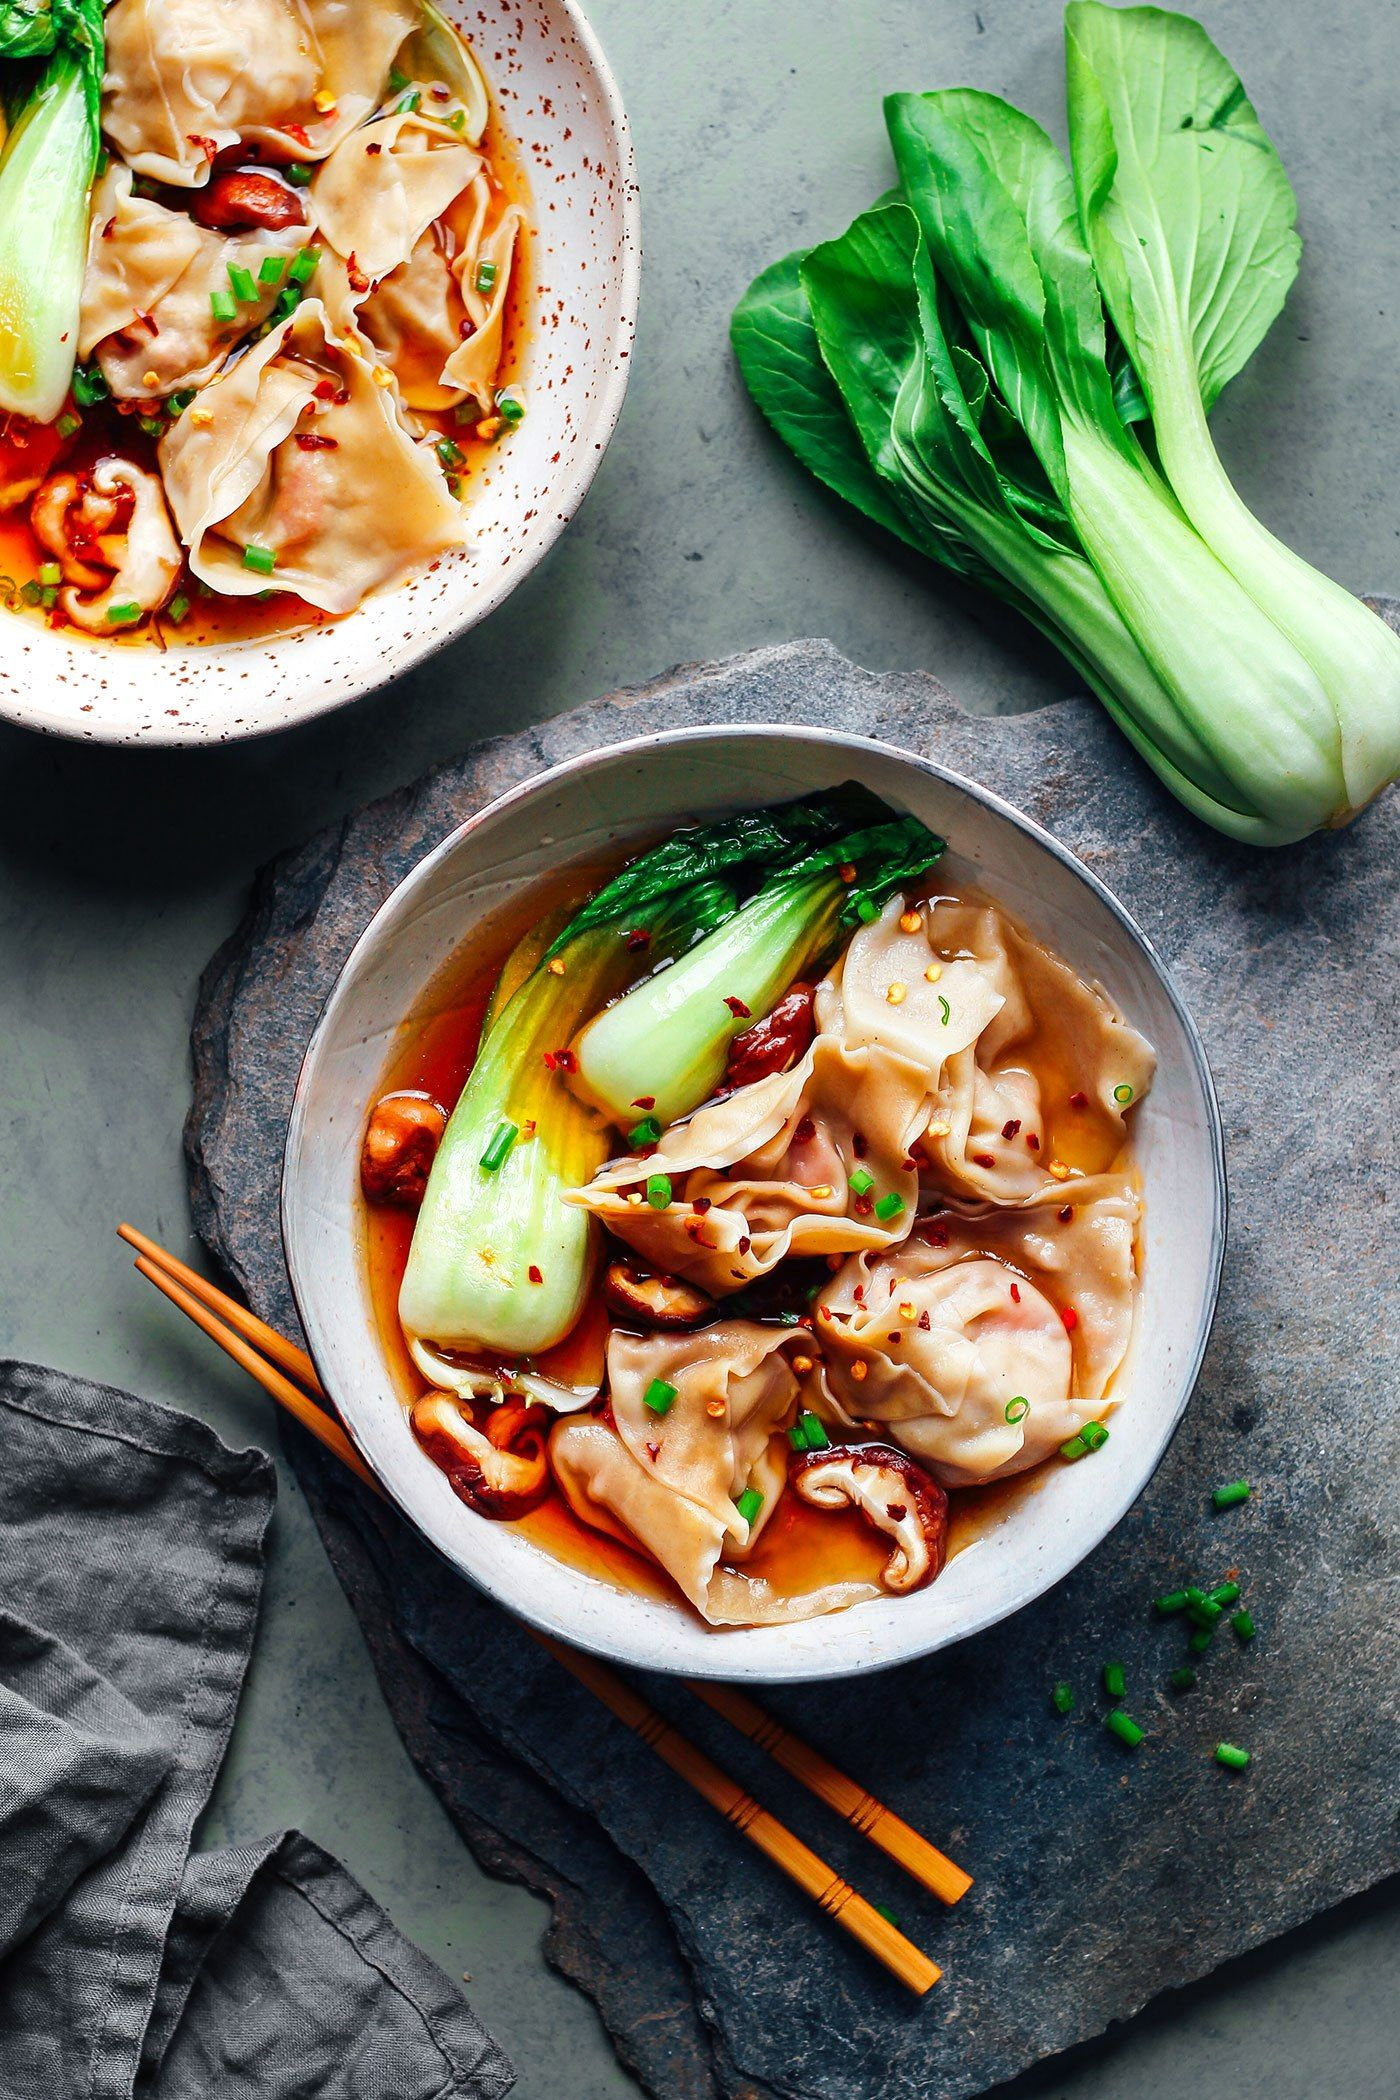 Hot Sour Jackfruit Wonton Soup